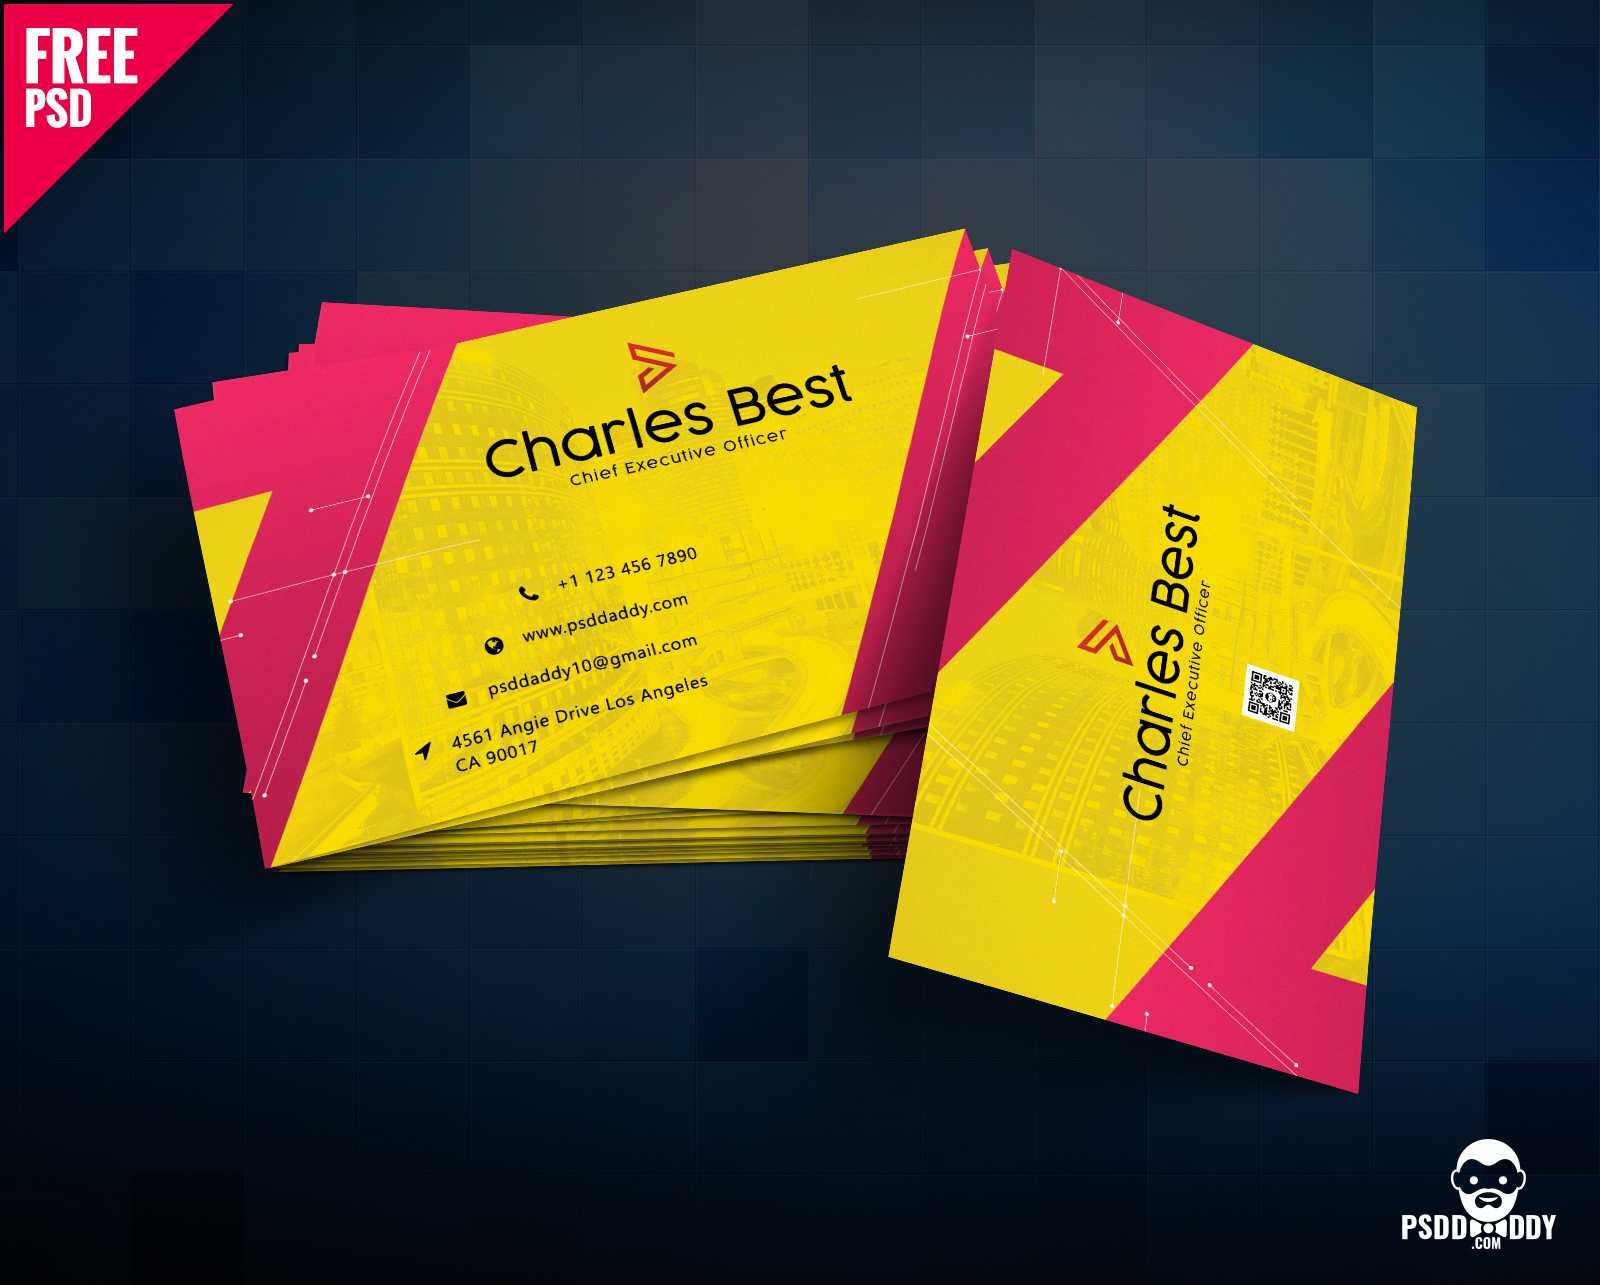 Download] Creative Business Card Free Psd | Psddaddy Regarding Photoshop Business Card Template With Bleed